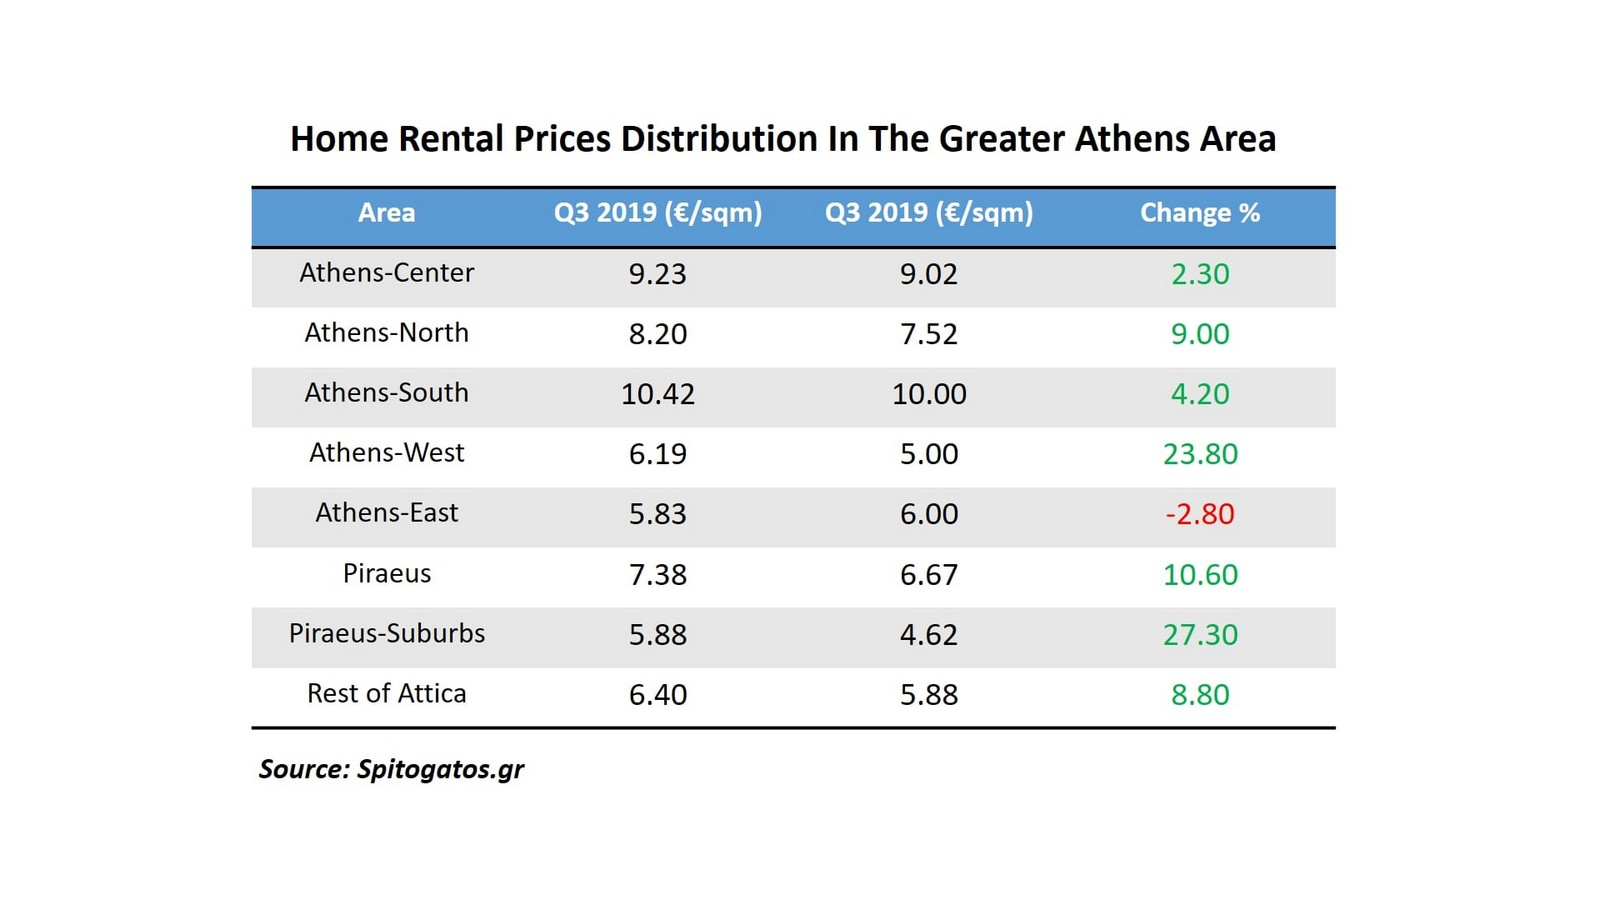 Home Renatl Prices Distribution in The Greater Athens Area